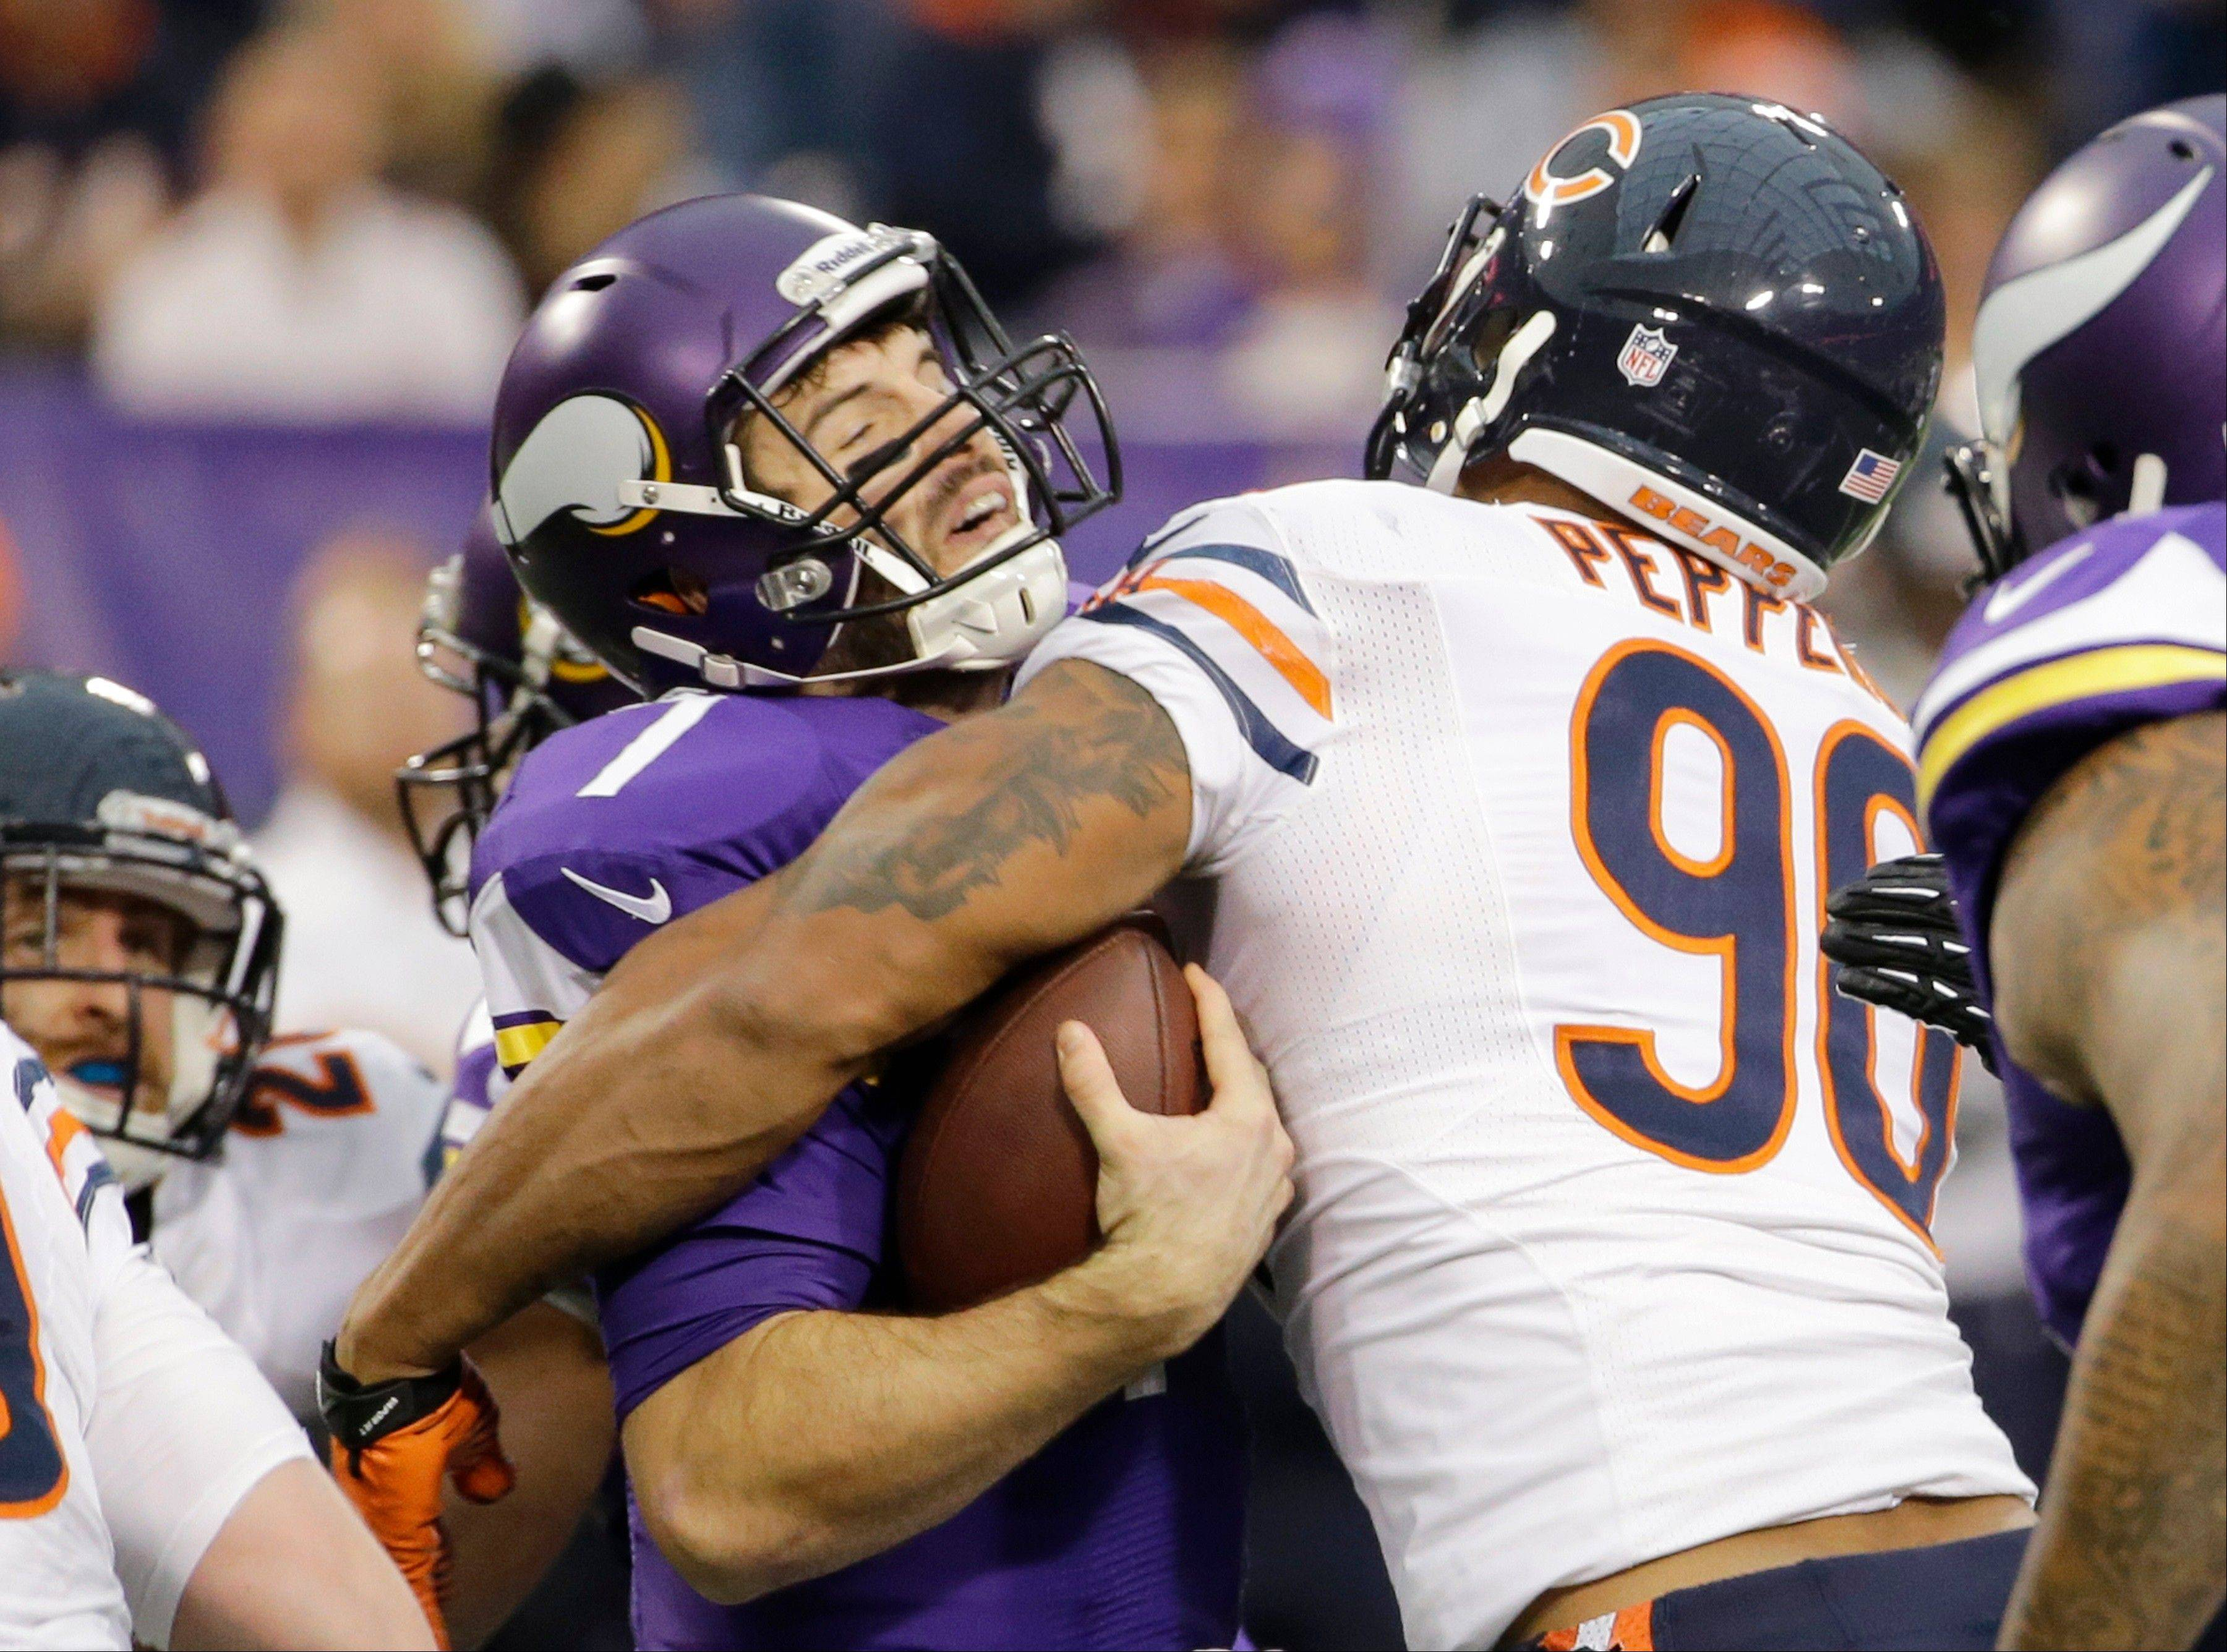 Vikings quarterback Christian Ponder is sacked by Julius Peppers during the first half of the Bears' overtime loss Sunday.